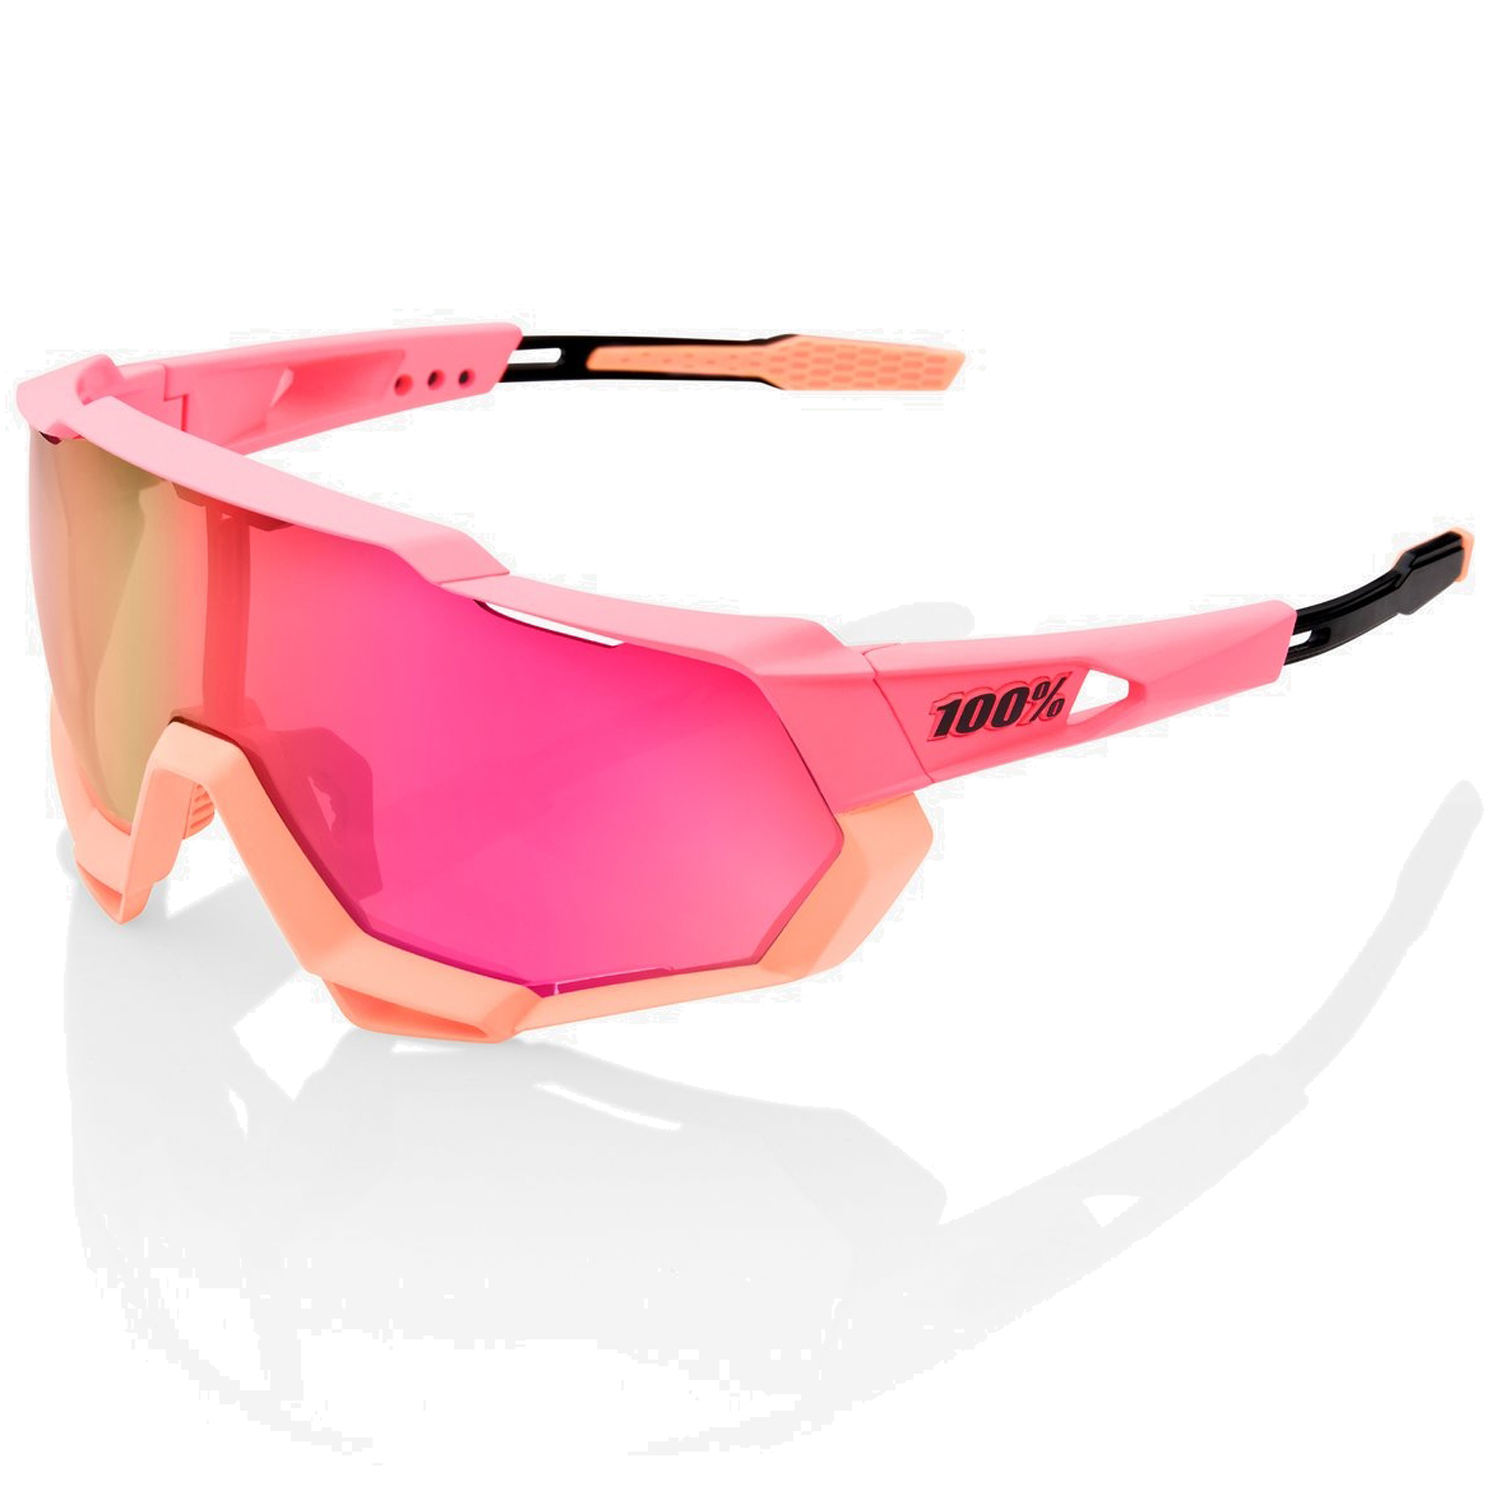 100% Speedtrap Mirror Lense Gafas - Matte Washed Out Neon Pink/Purple Multilayer + Clear